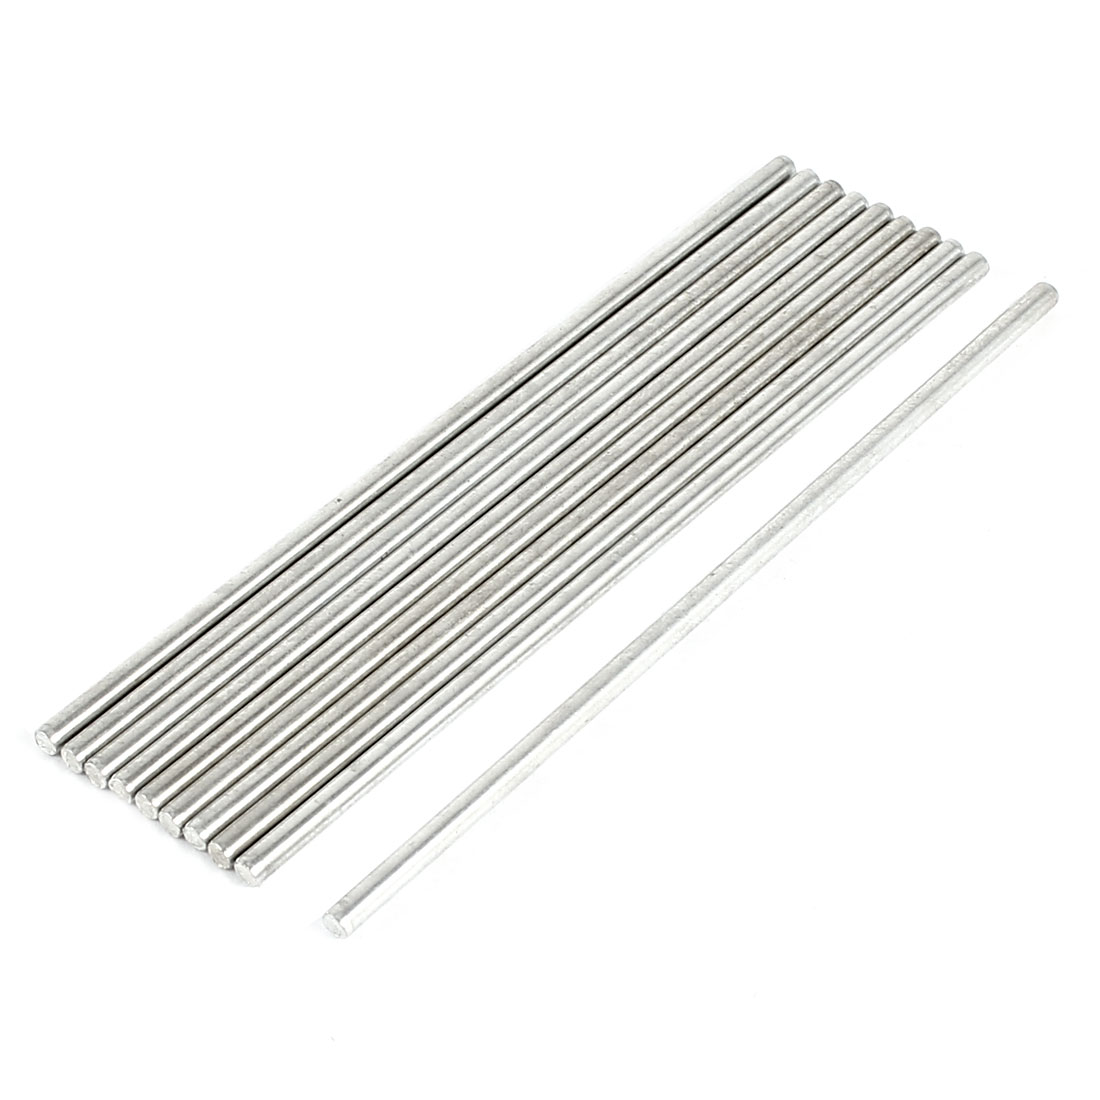 DIY Car Helicopter Model Toy Stainless Steel Round Axles Rod Bar 2.5x90mm 10 Pcs